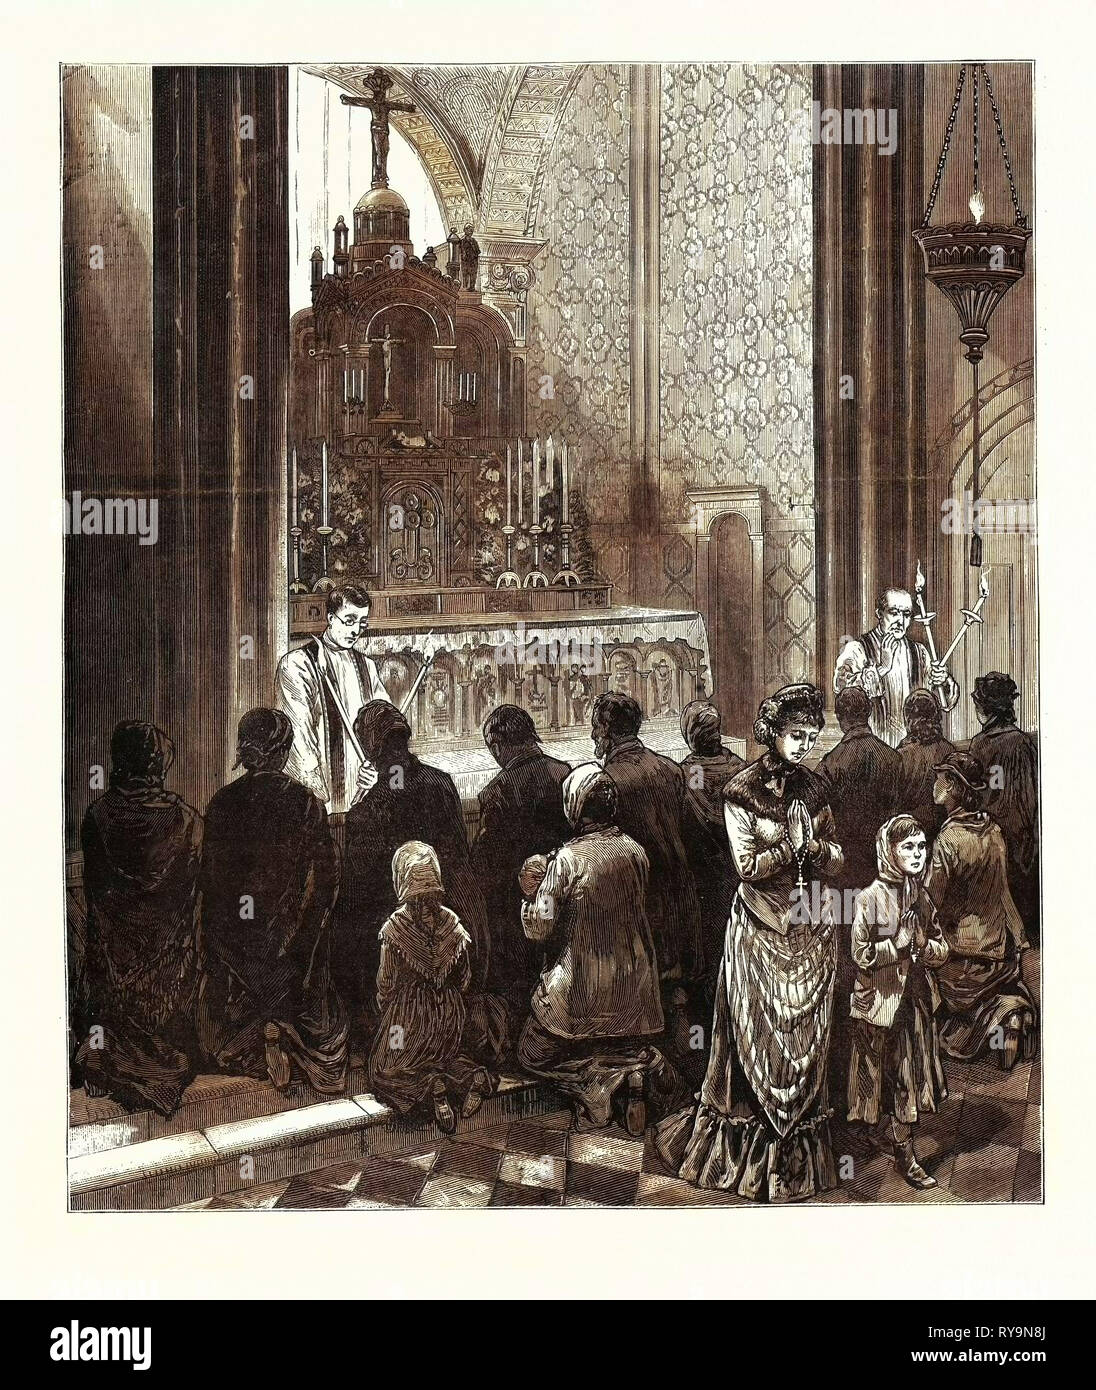 New York: Catholic Worshipers Imploring the Intercession of St. Blaise against Diphtheria and Other Diseases, in St. Alphonsus' Church. U.S., Engraving 1880 1881 - Stock Image